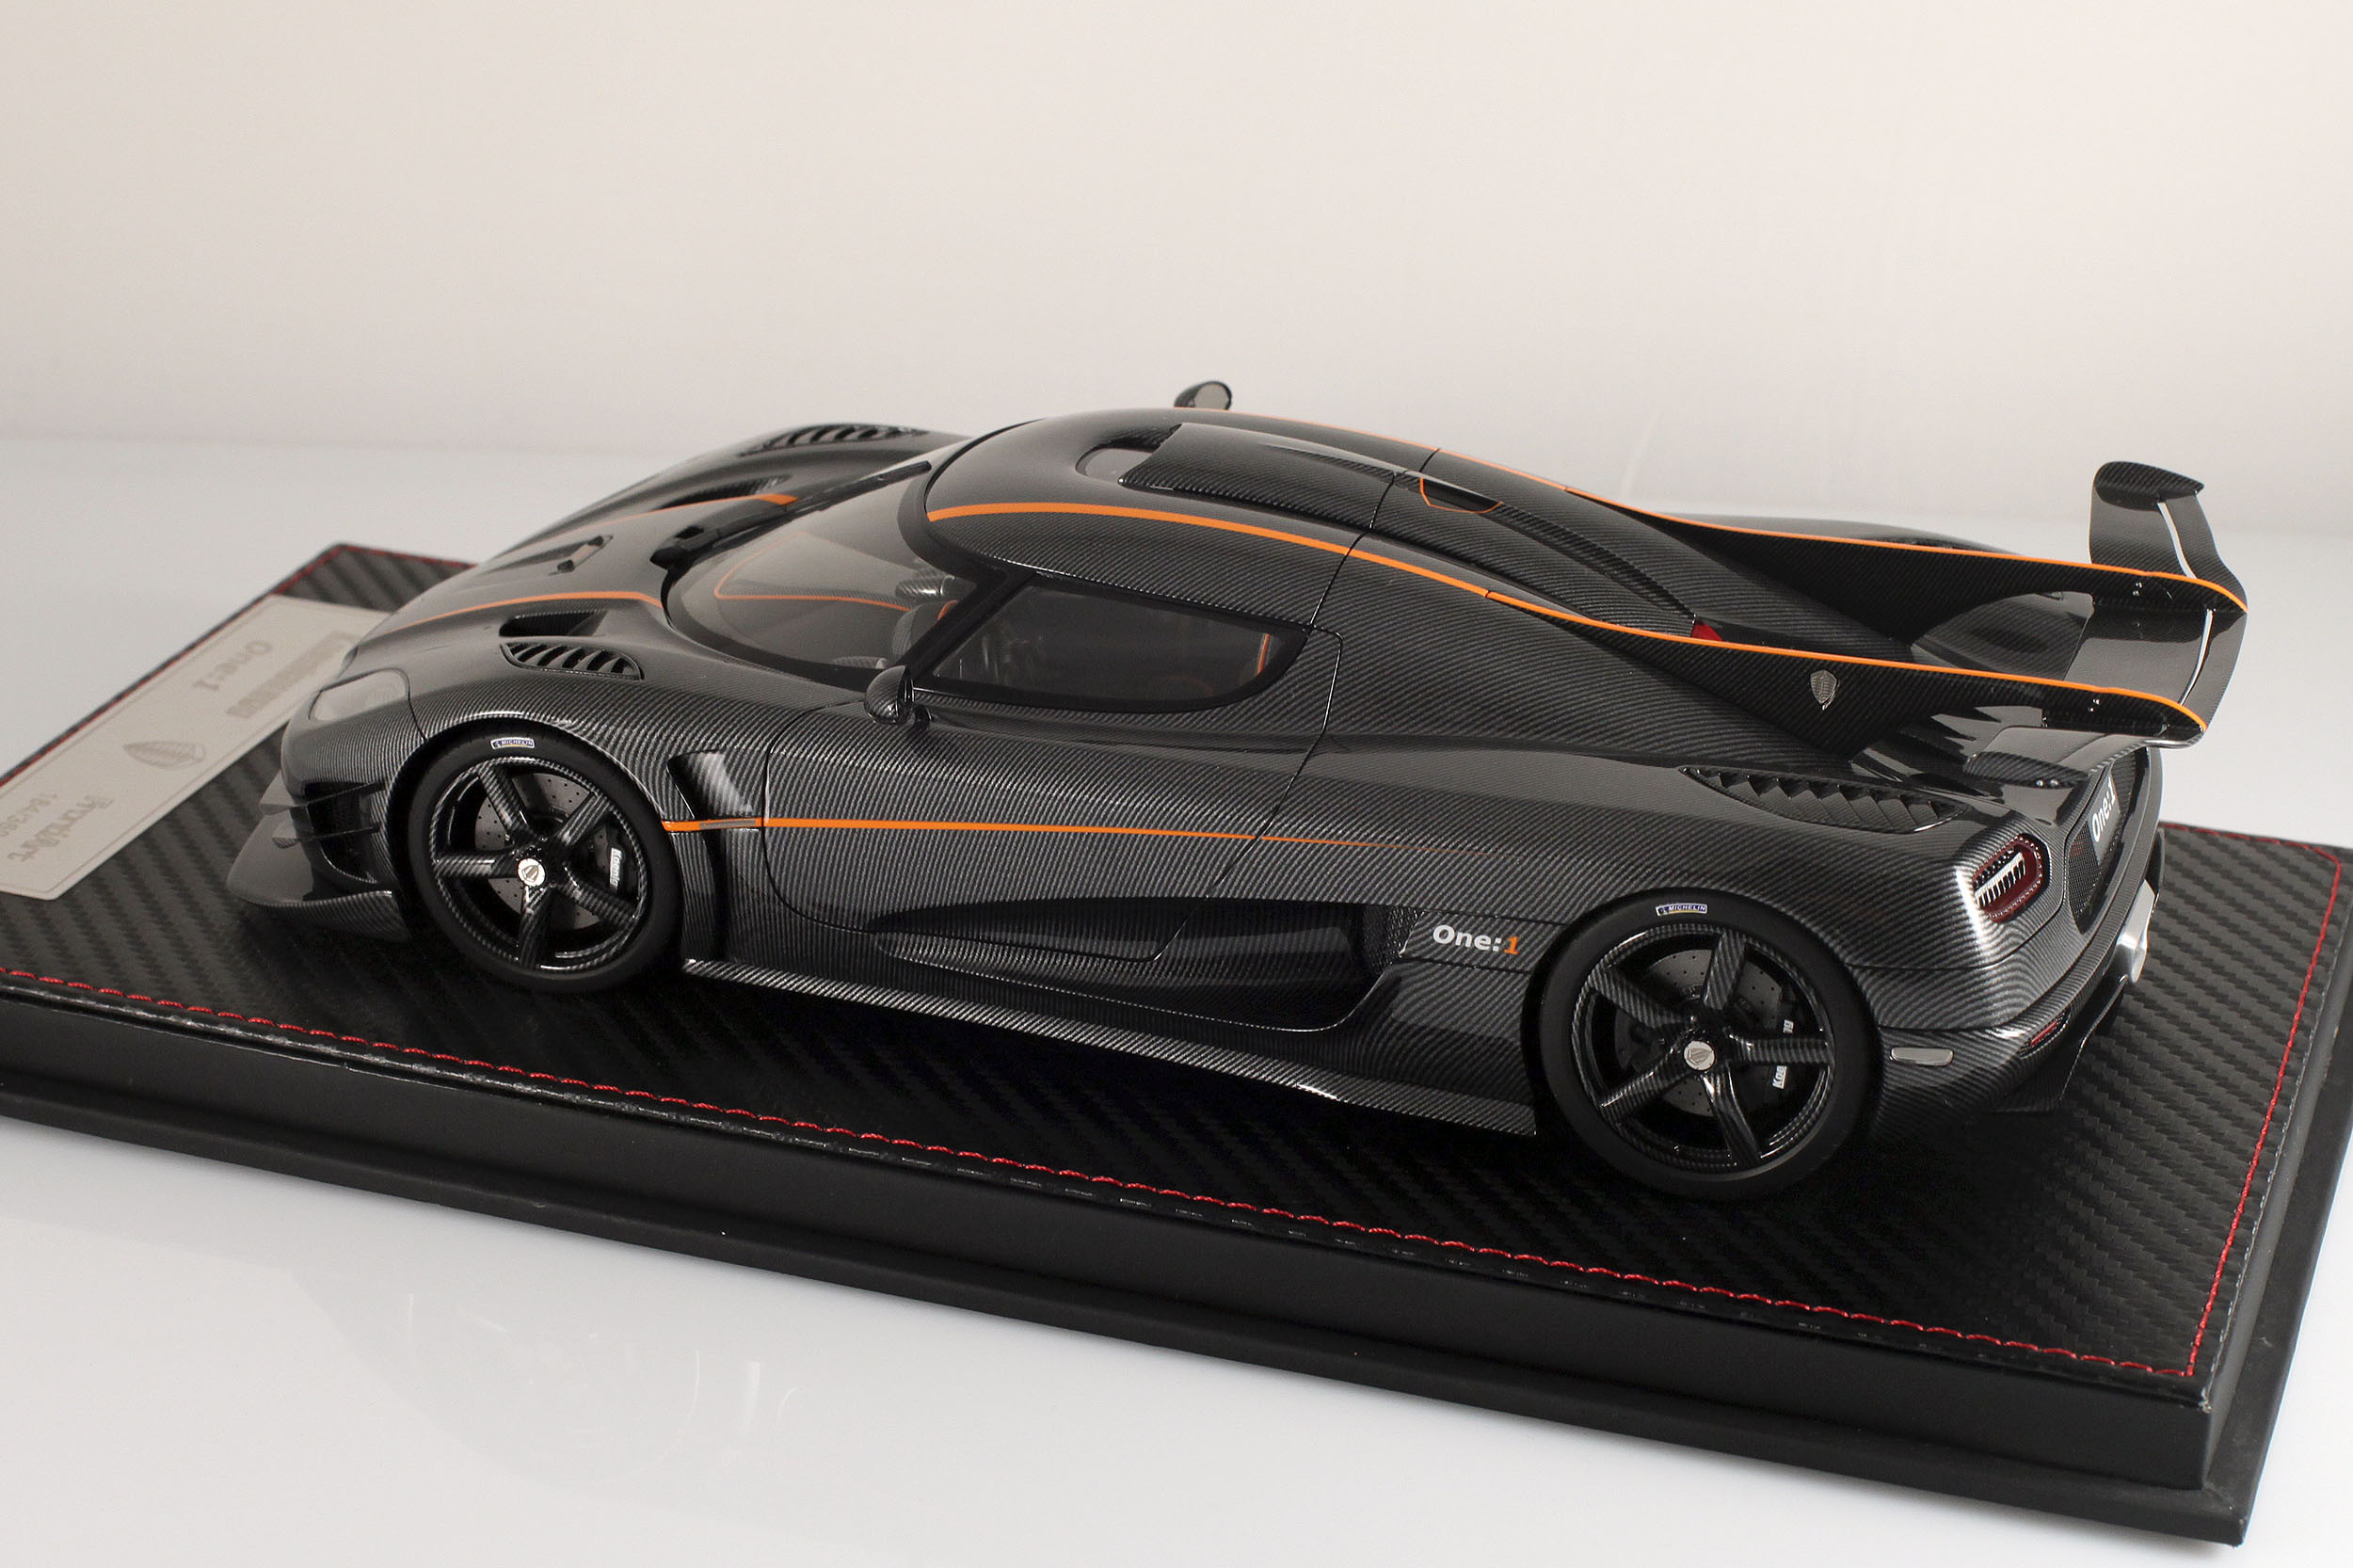 Agera-One1-carbone-8